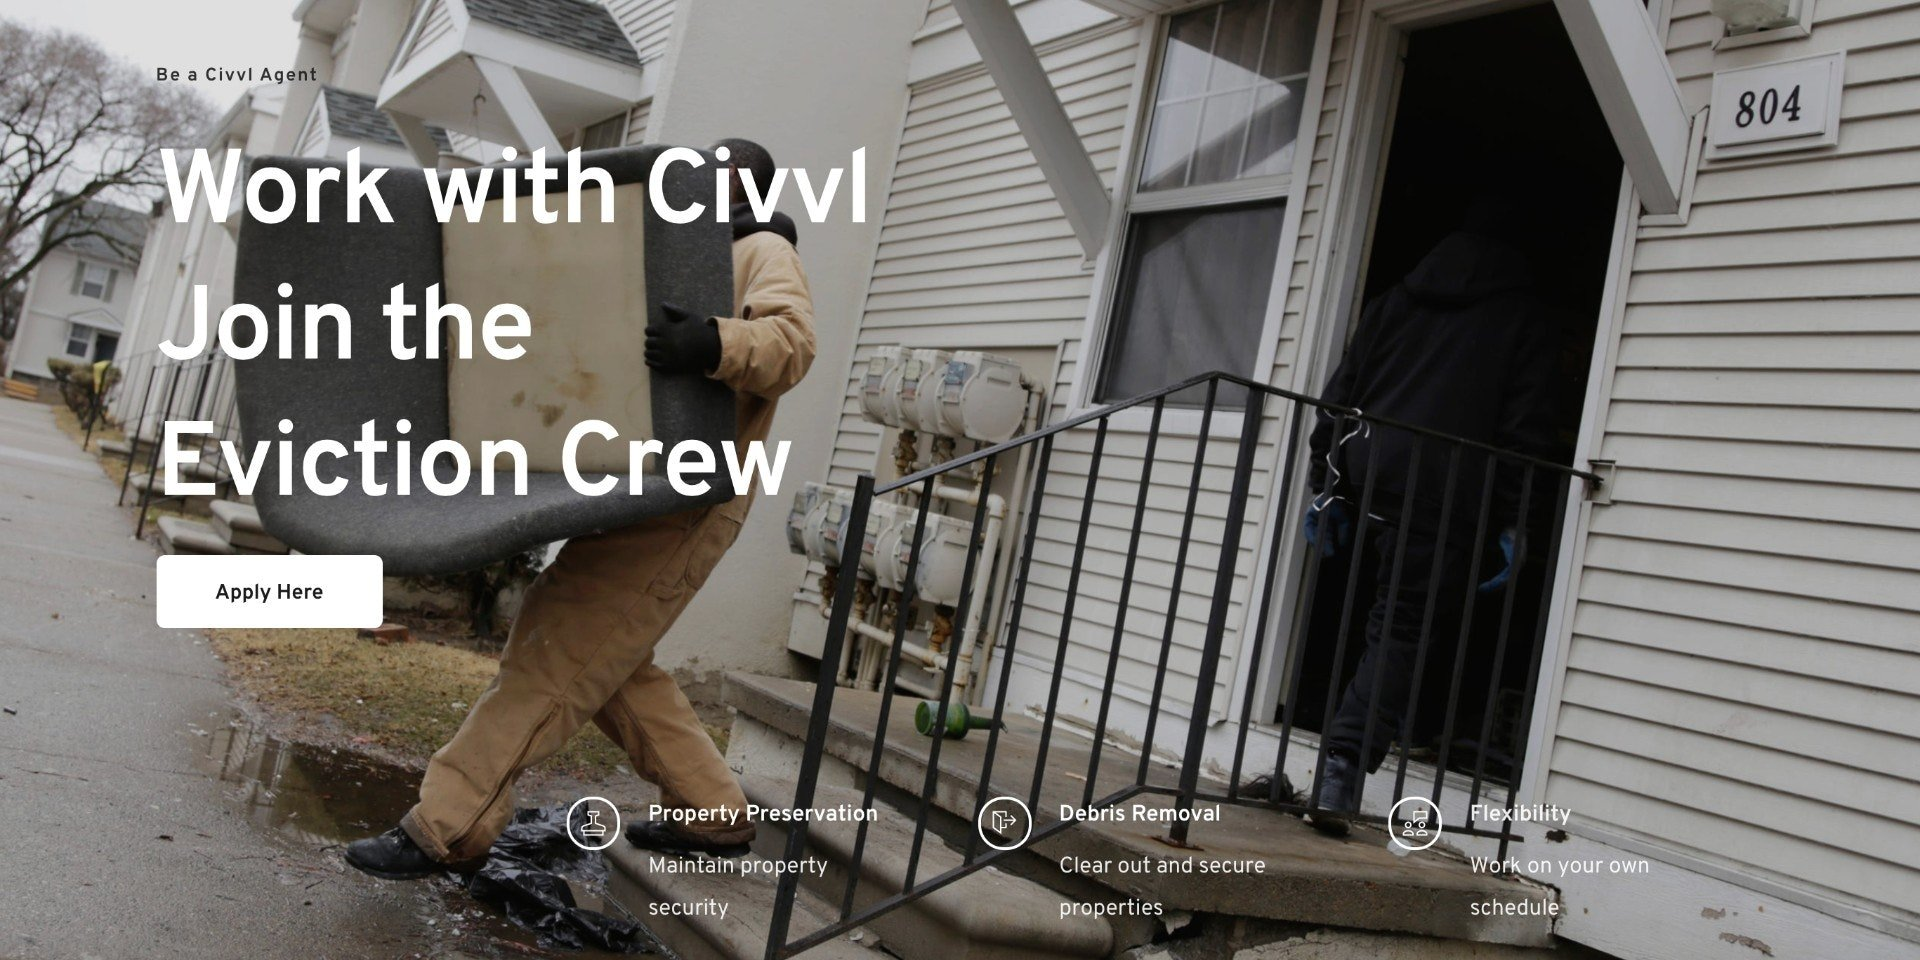 Civvl website advertises eviction gig